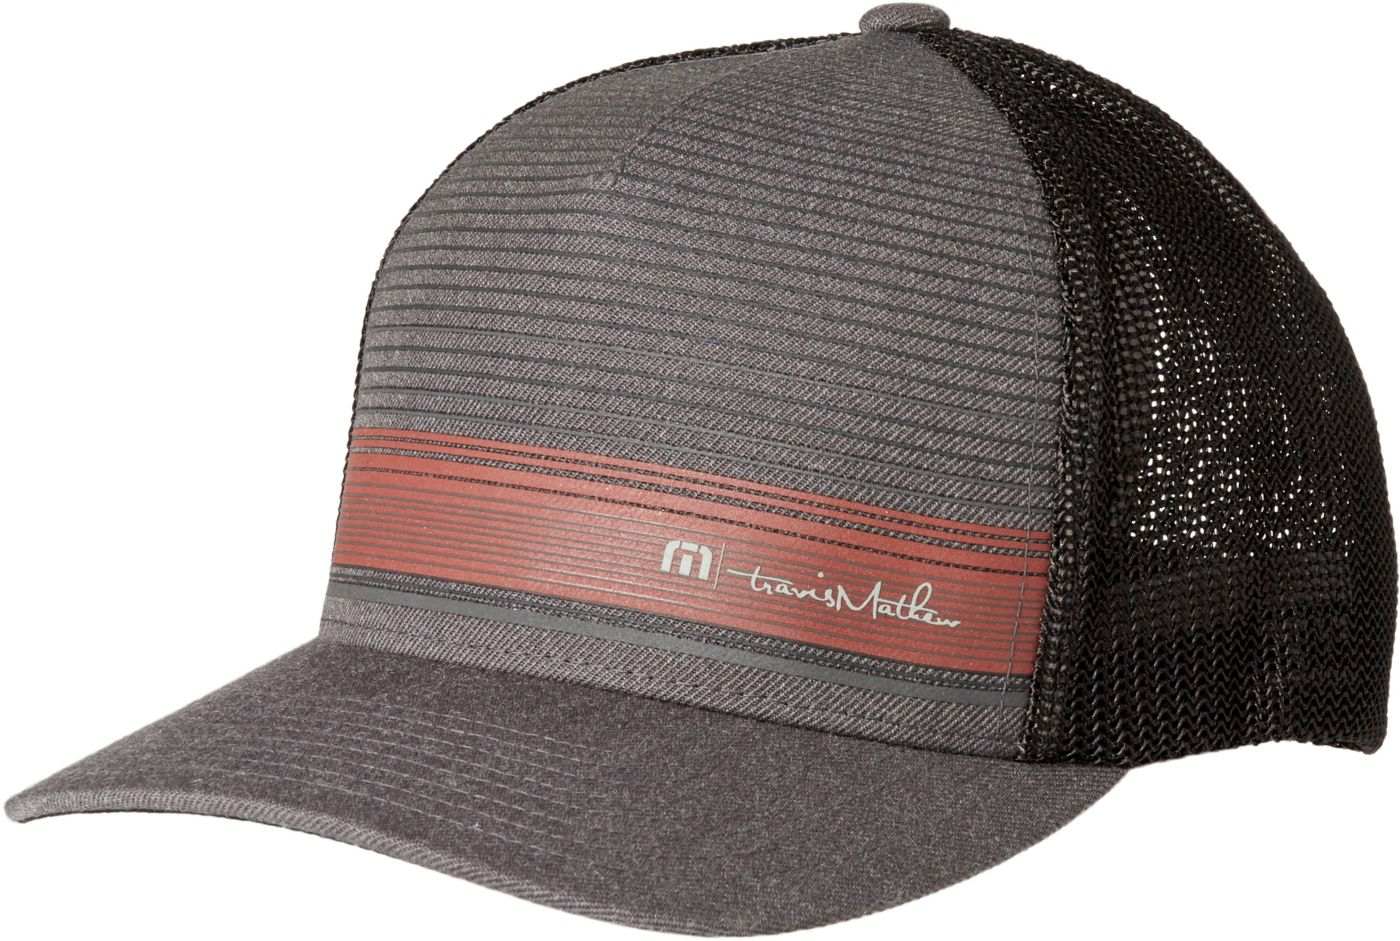 TravisMathew Men's Beauvais Flexfit Golf Hat